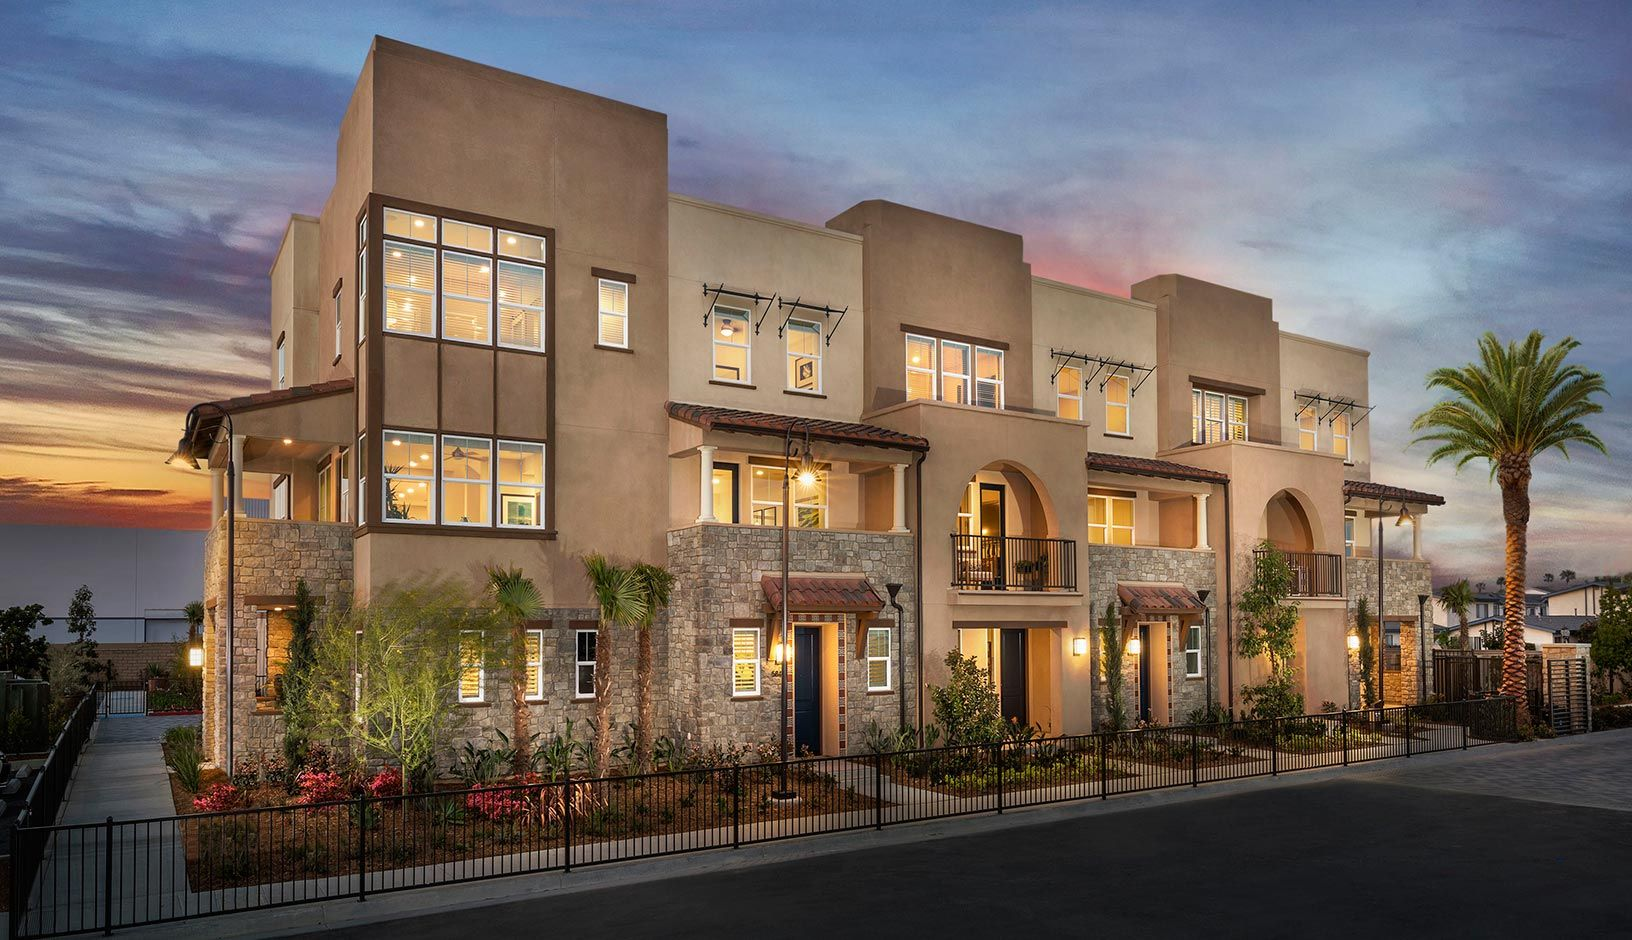 Single Family for Sale at Stratapointe - Residence 2 5856 Spring Street Buena Park, California 90620 United States